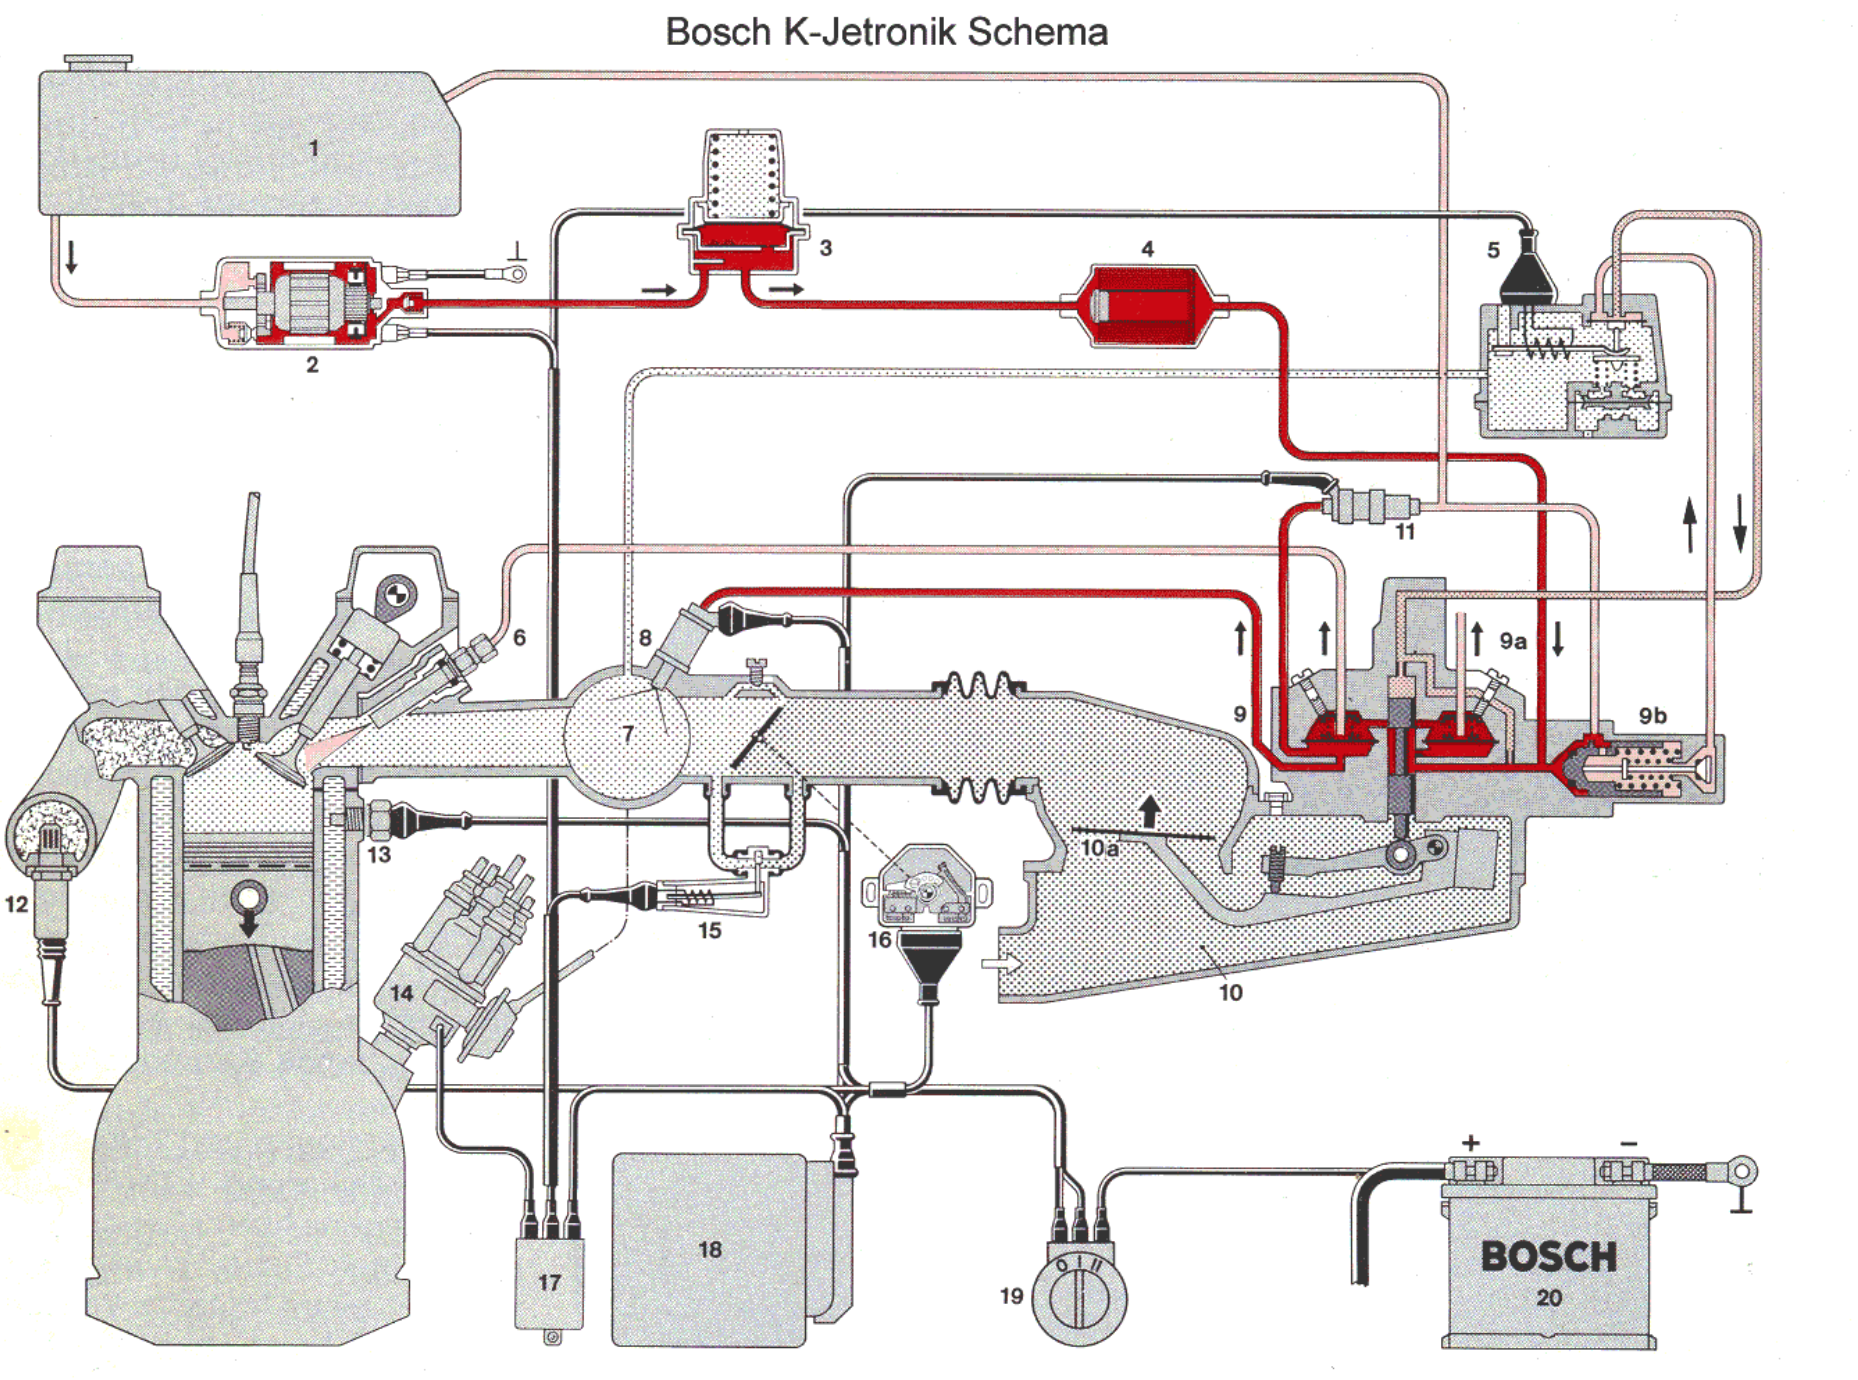 Mercedes Benz Fuel System Diagrams - Wiring Diagram Library